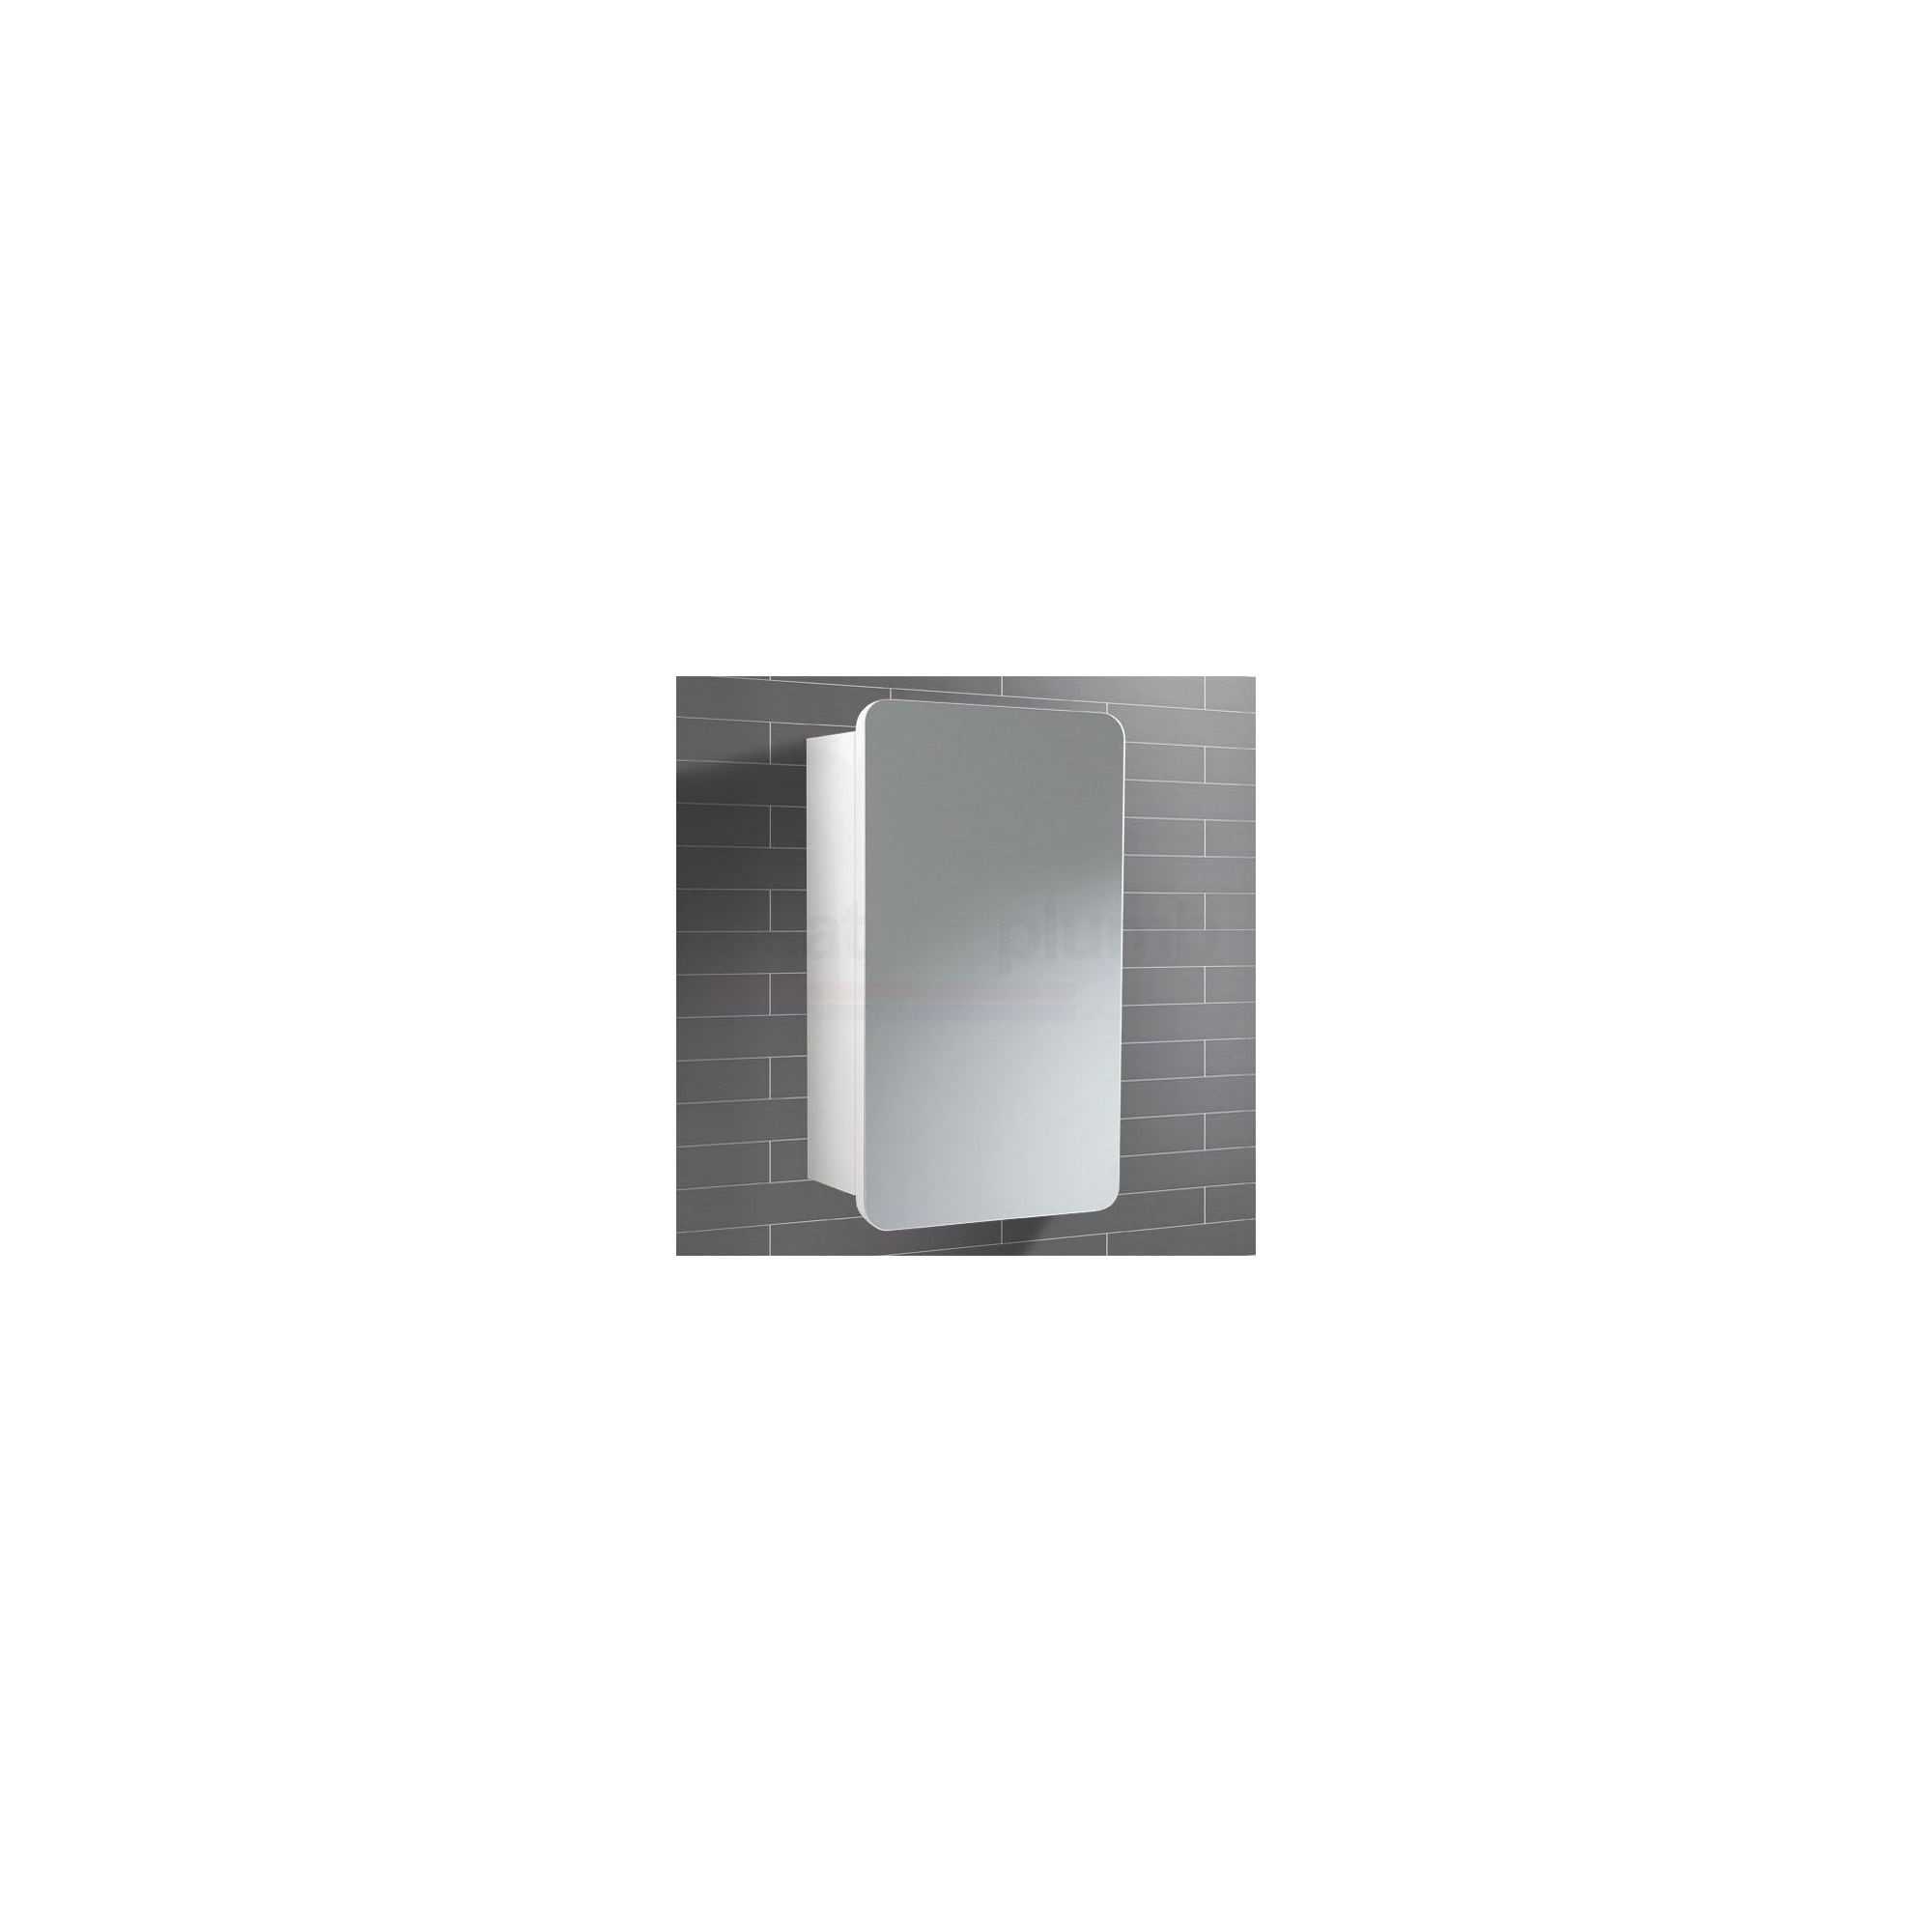 HiB Montana Mirrored Bathroom Cabinet 570mm High x 350mm Wide x 140mm Deep